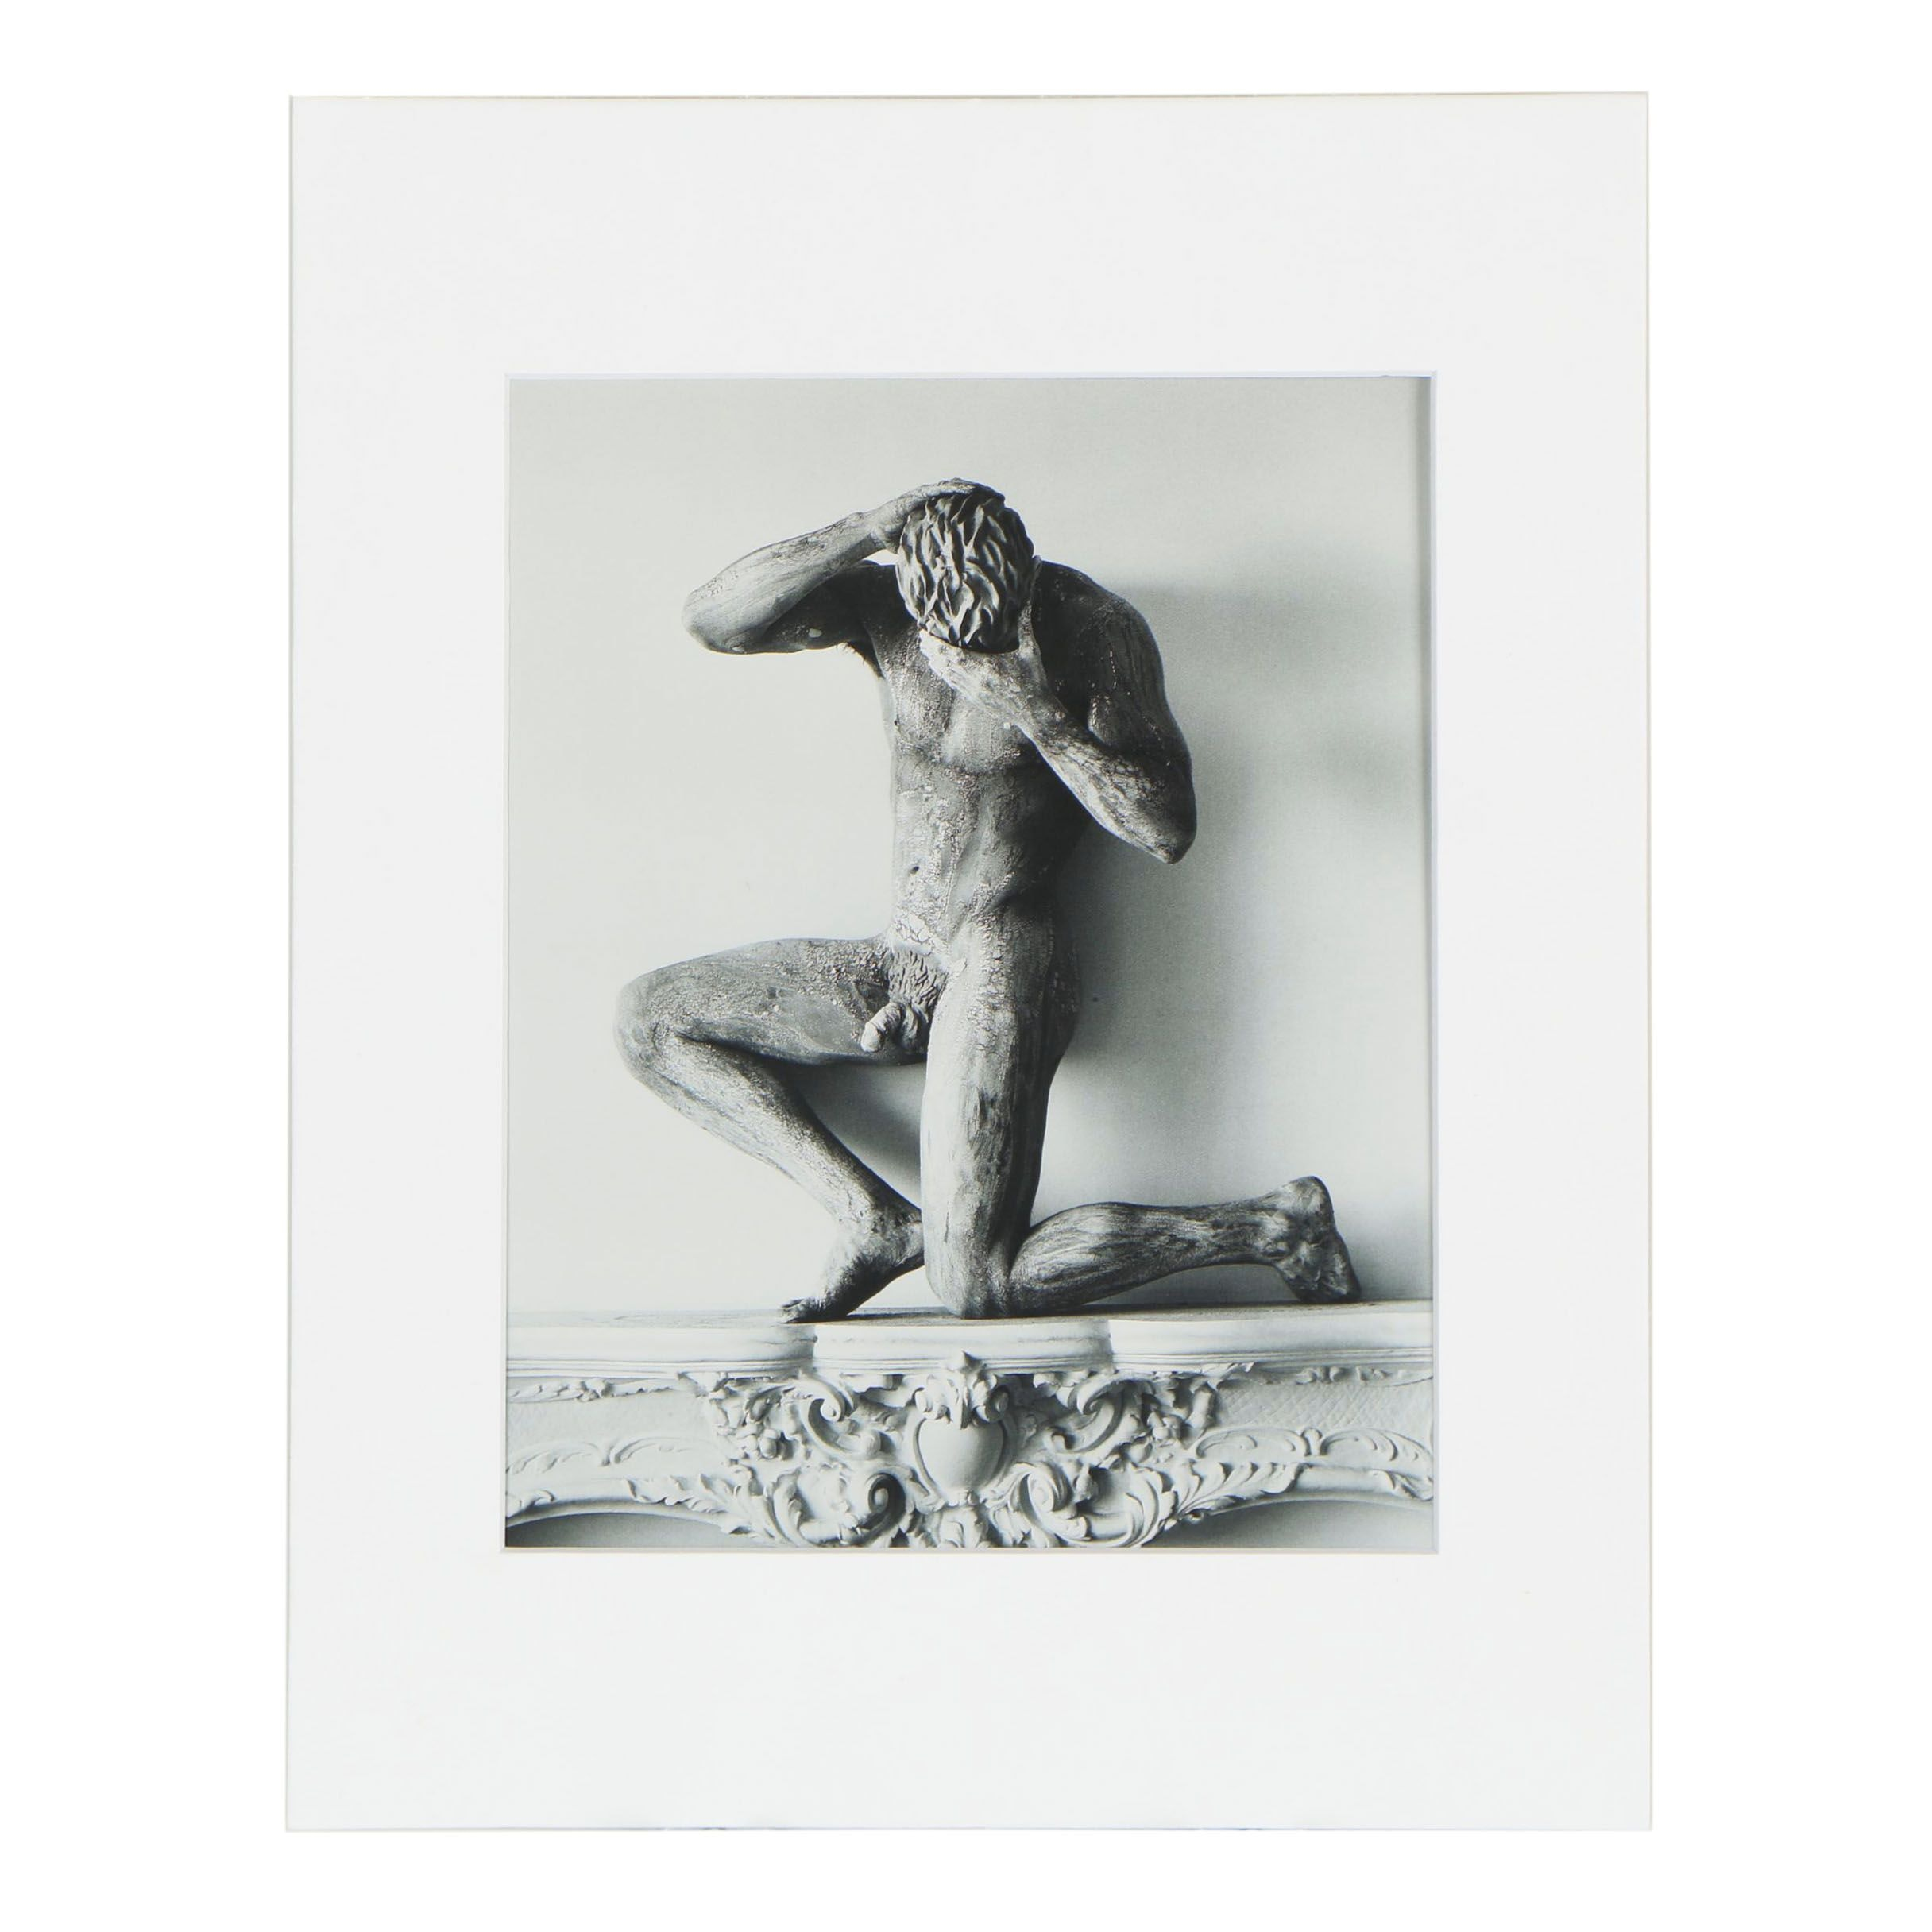 """Publisher Copy Digital Photograph after Herb Ritts """"Statue of Clay ..."""", 1980s"""